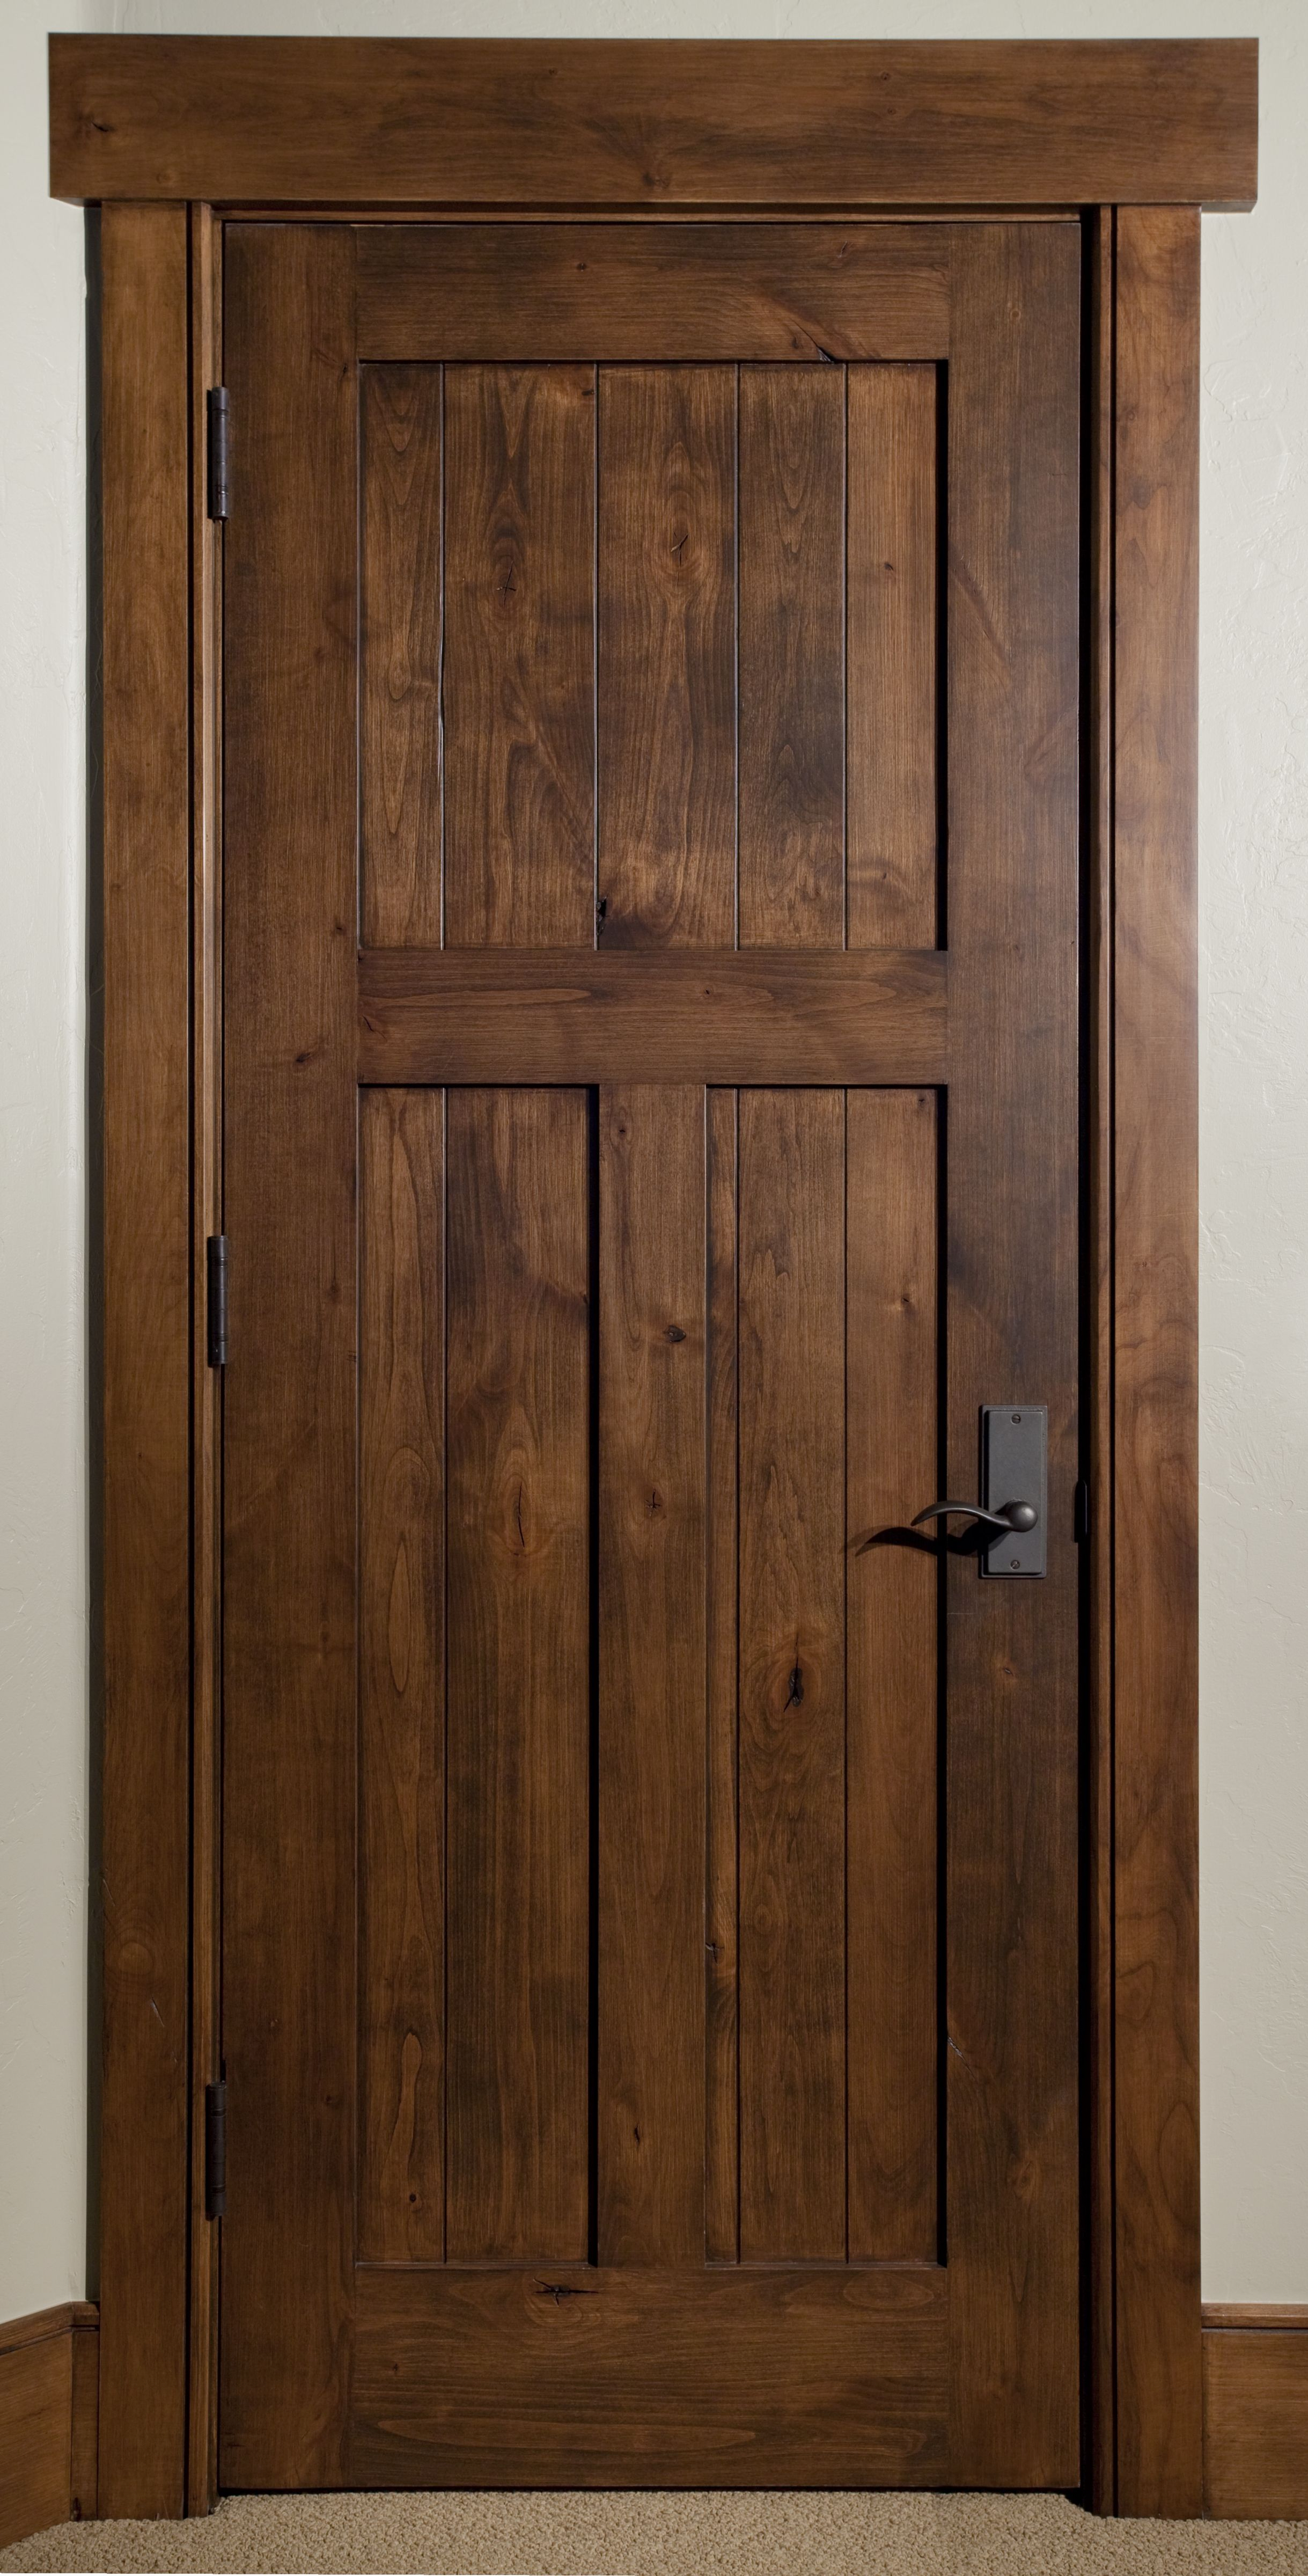 a remodelaholic interior on together color style seven house room diy rc ideas sliding shipping unusual doors build barn exciting free rolling design with comfy pretty hardware brown door light wooden